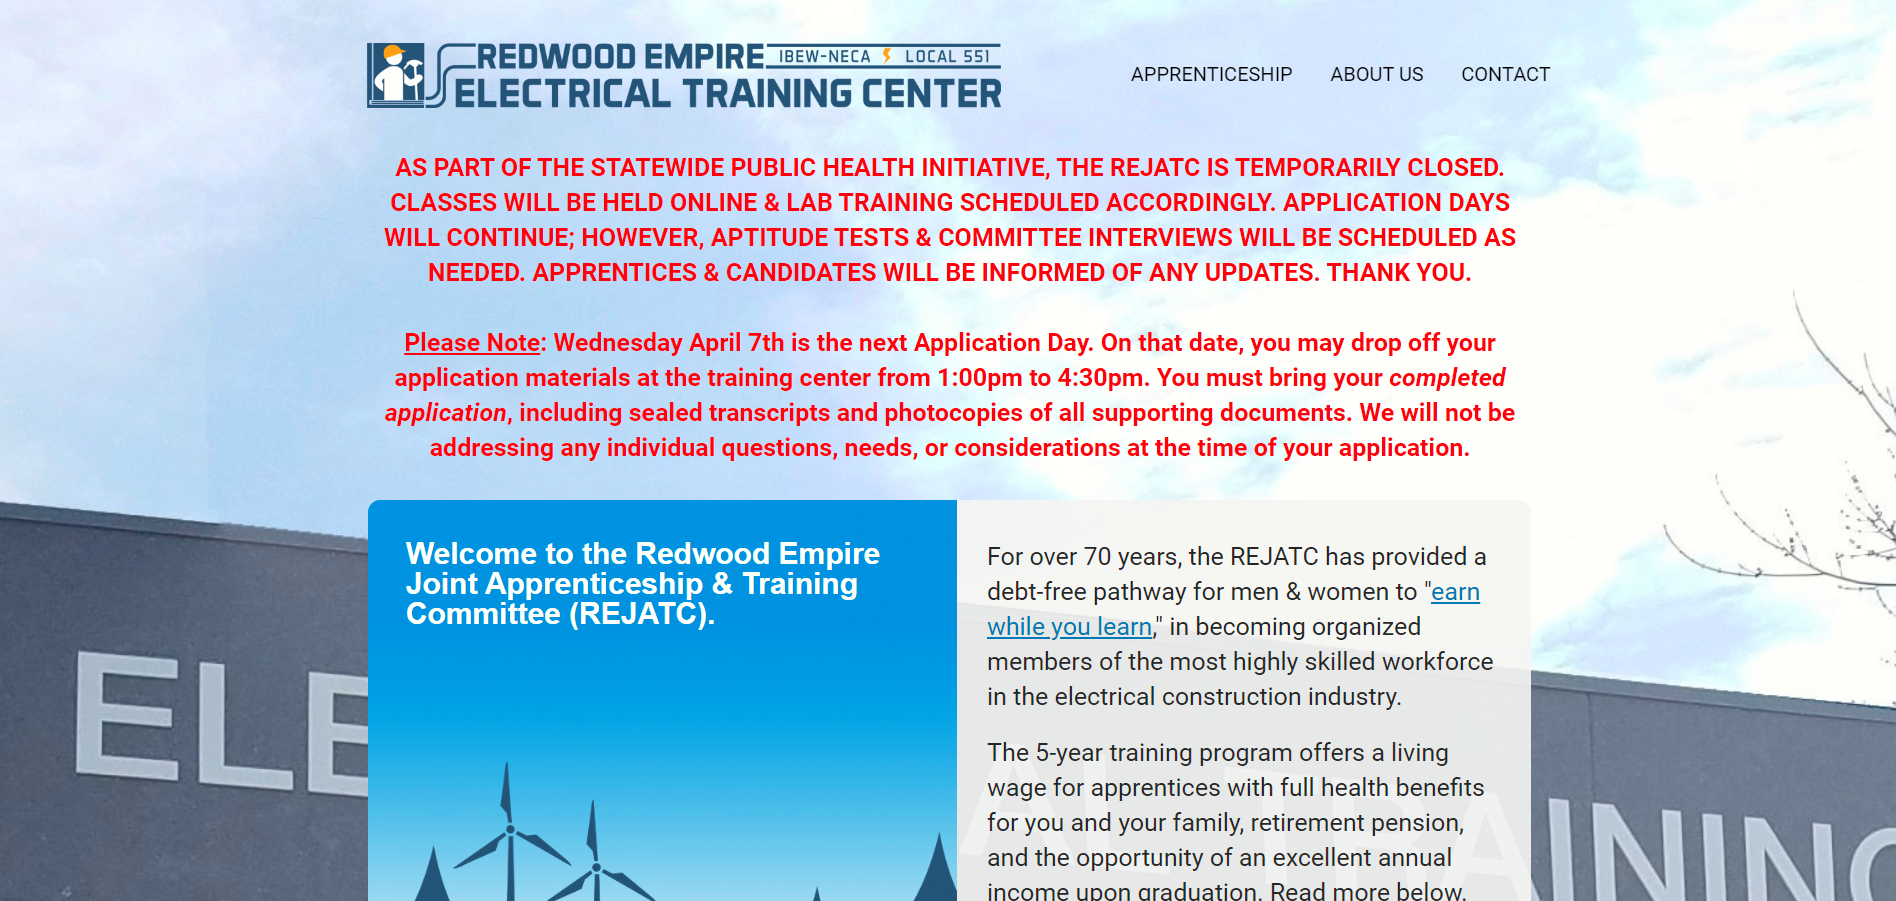 redwood empire electrical training center